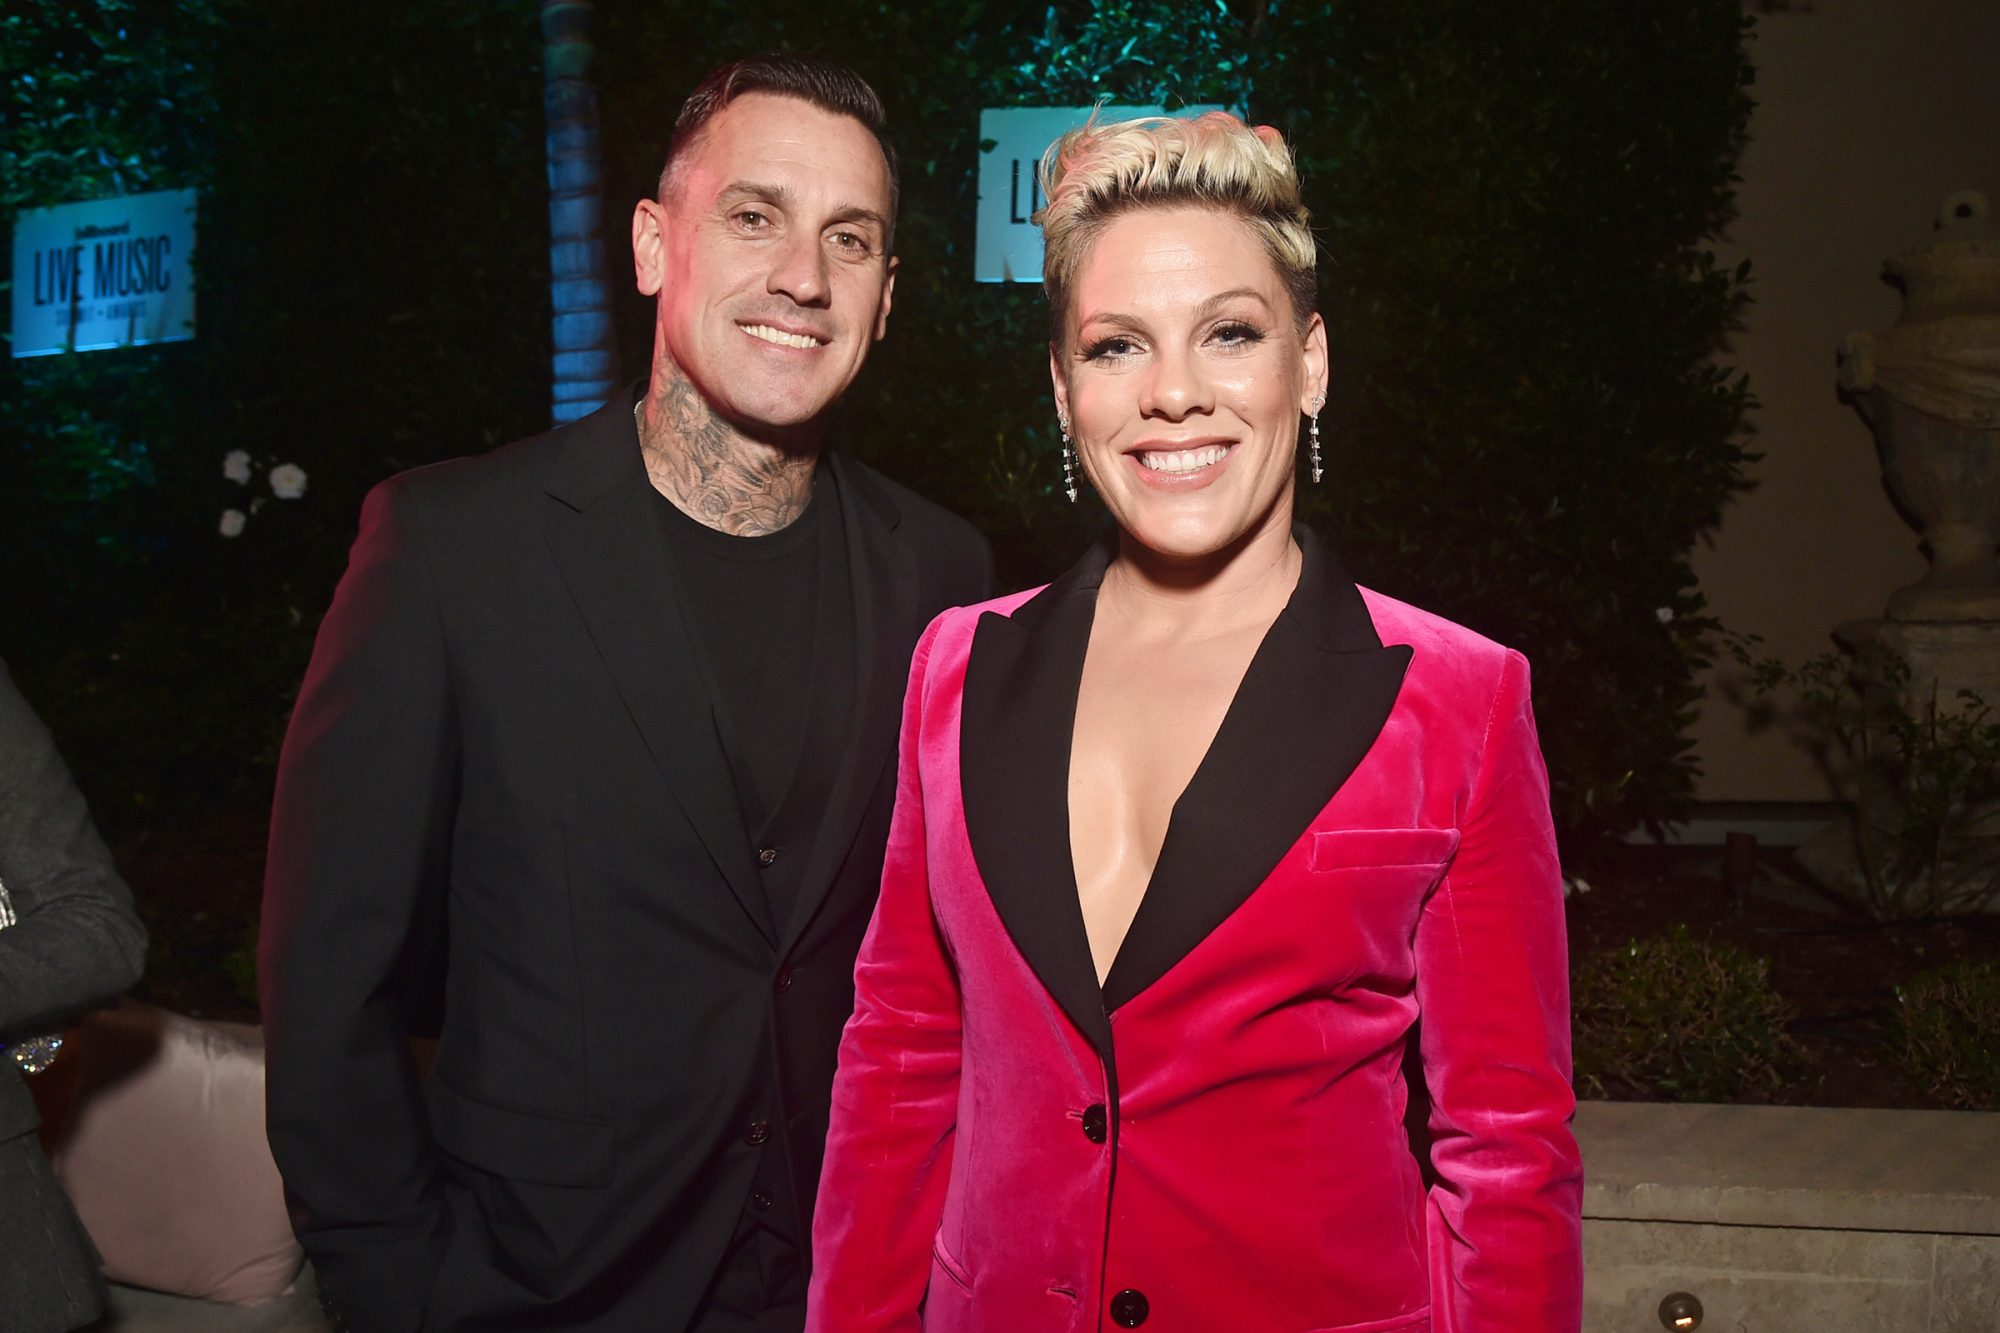 Carey Hart and Pink attend Billboard's 2019 LIve Music Summit and Awards Ceremony at the Montage Hotel on November 05, 2019 in Beverly Hills, California